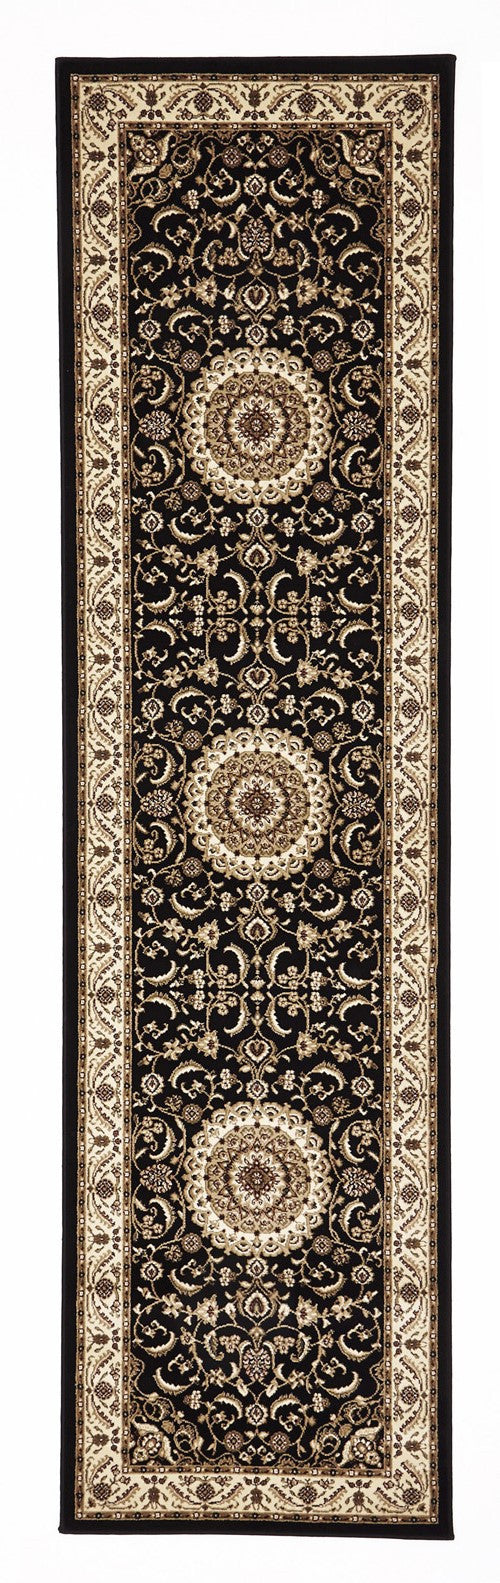 Sydney Medallion Rug Black with Ivory Border - aladdinrugs - 6